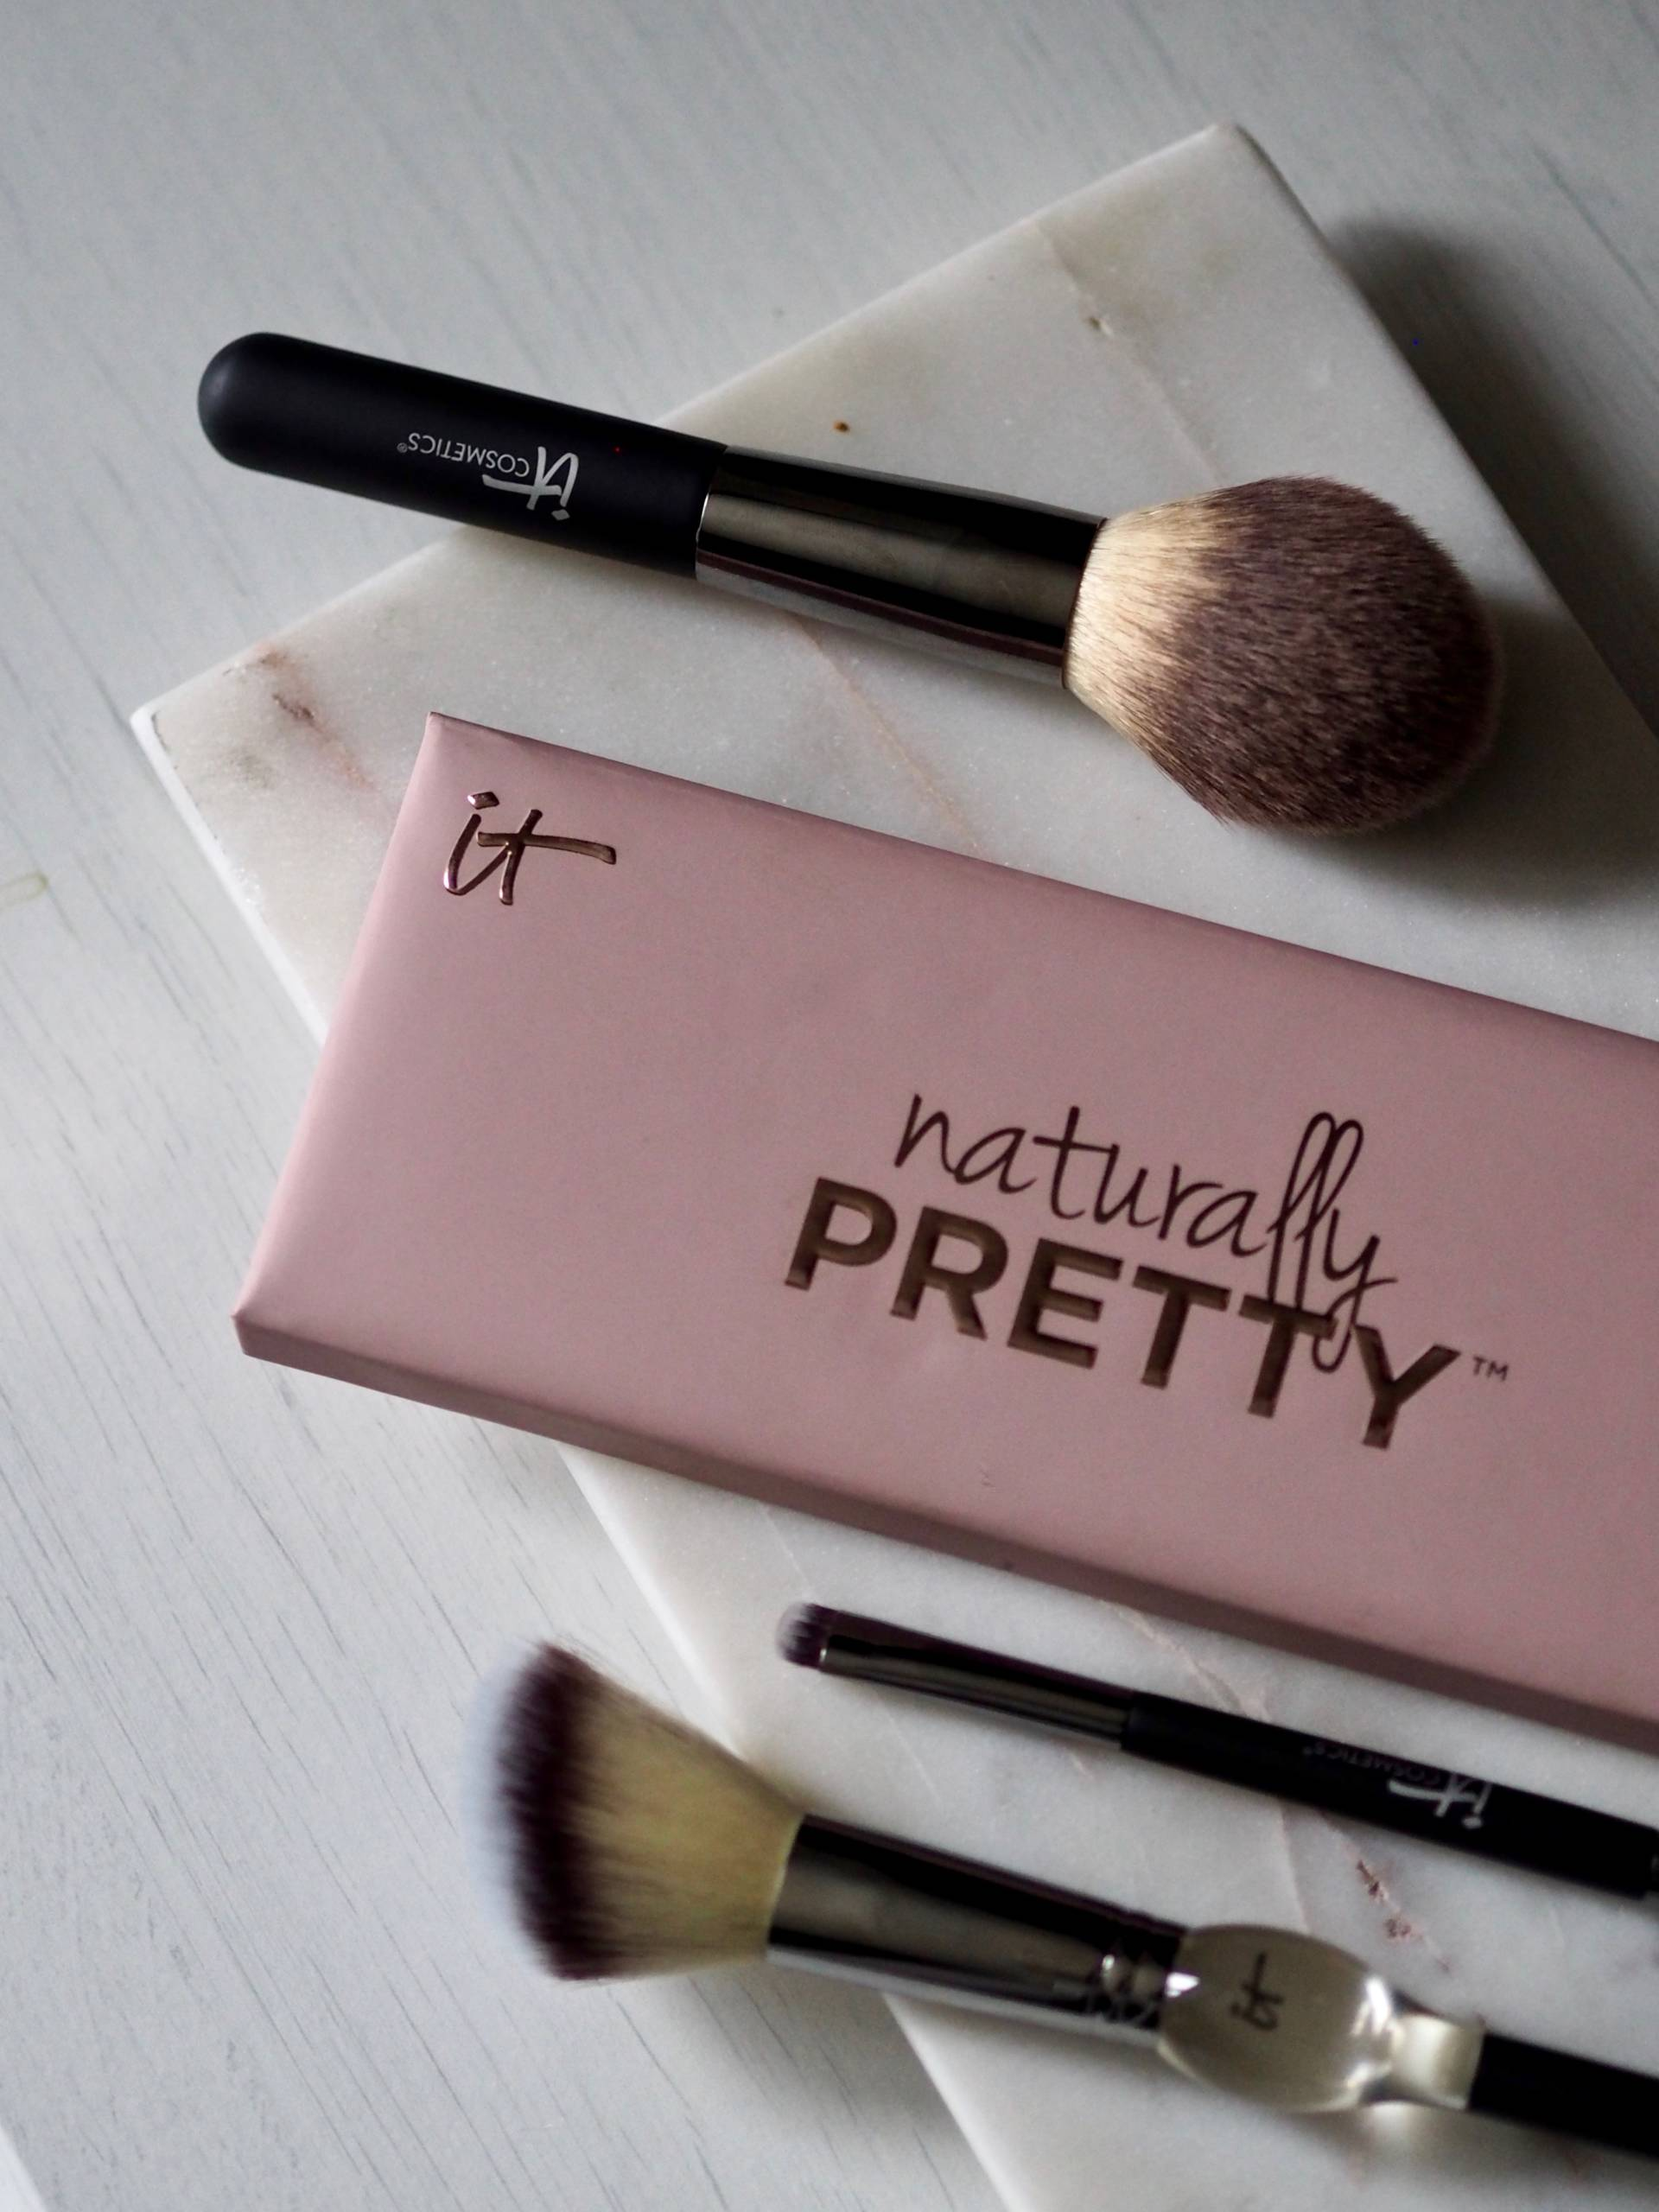 IT COSMETICS BRUSHES AND PRETTY EYE PALETTE